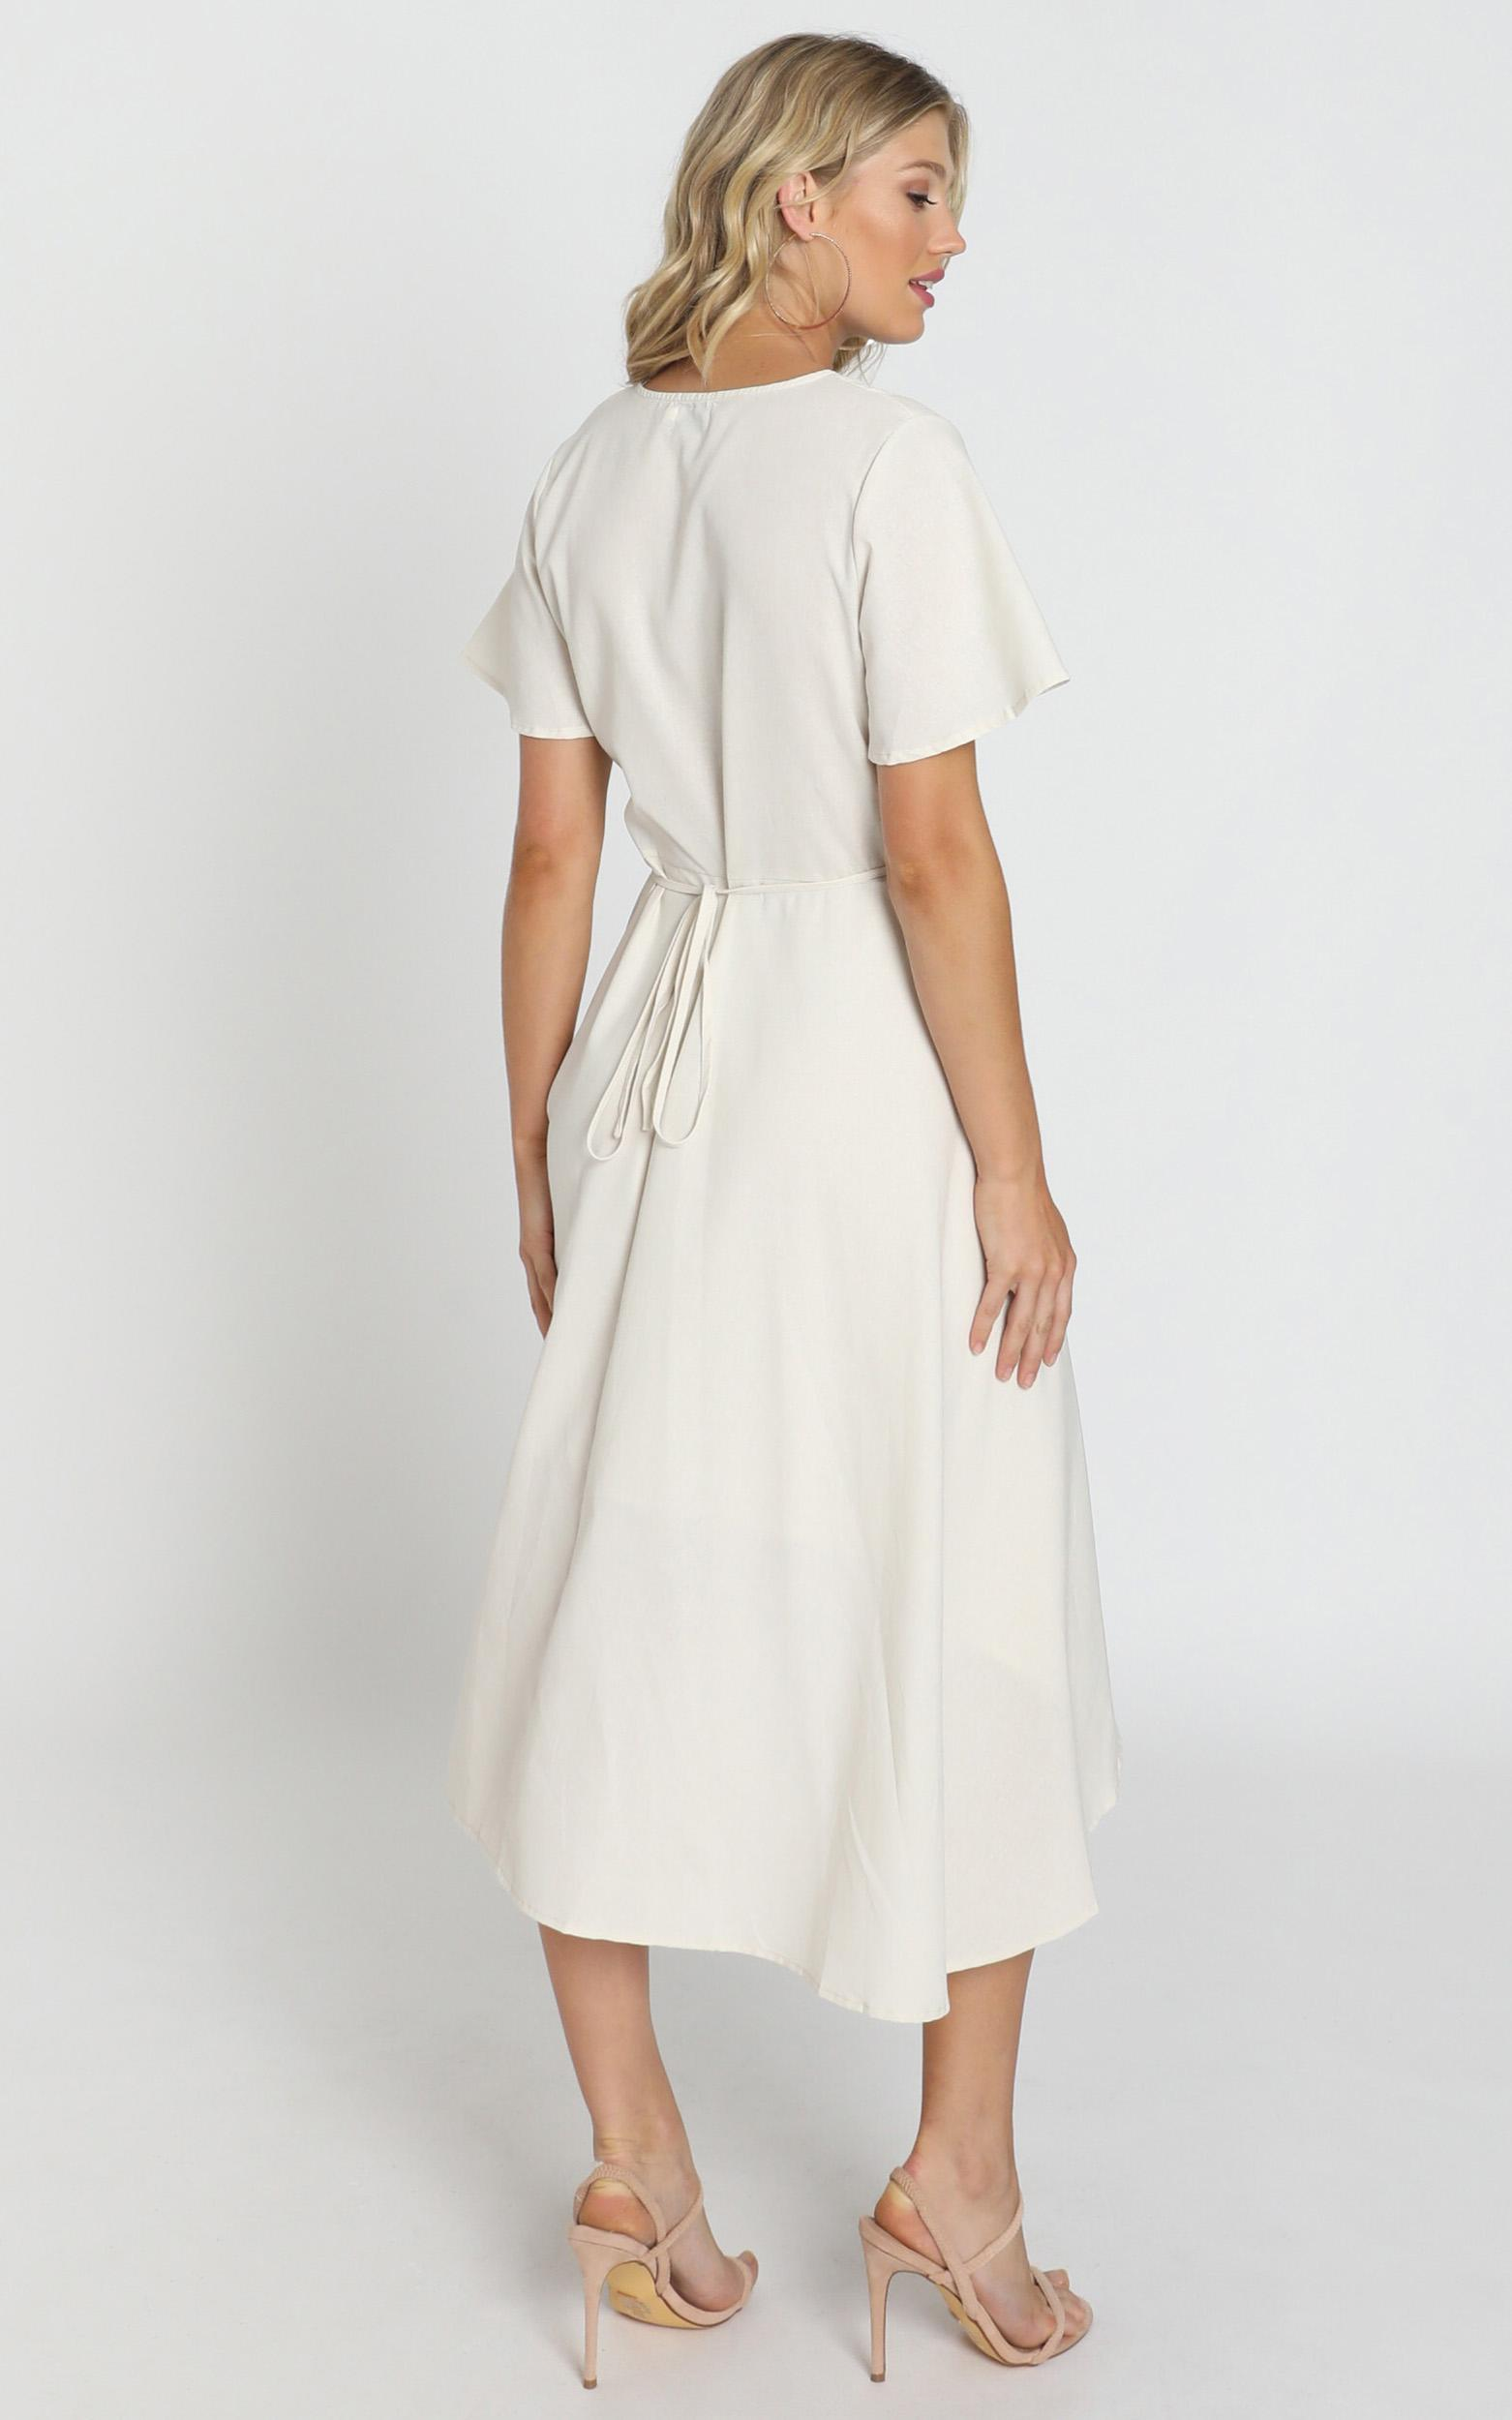 Fresh Look Wrap Maxi Dress in beige linen - 8 (S), Beige, hi-res image number null